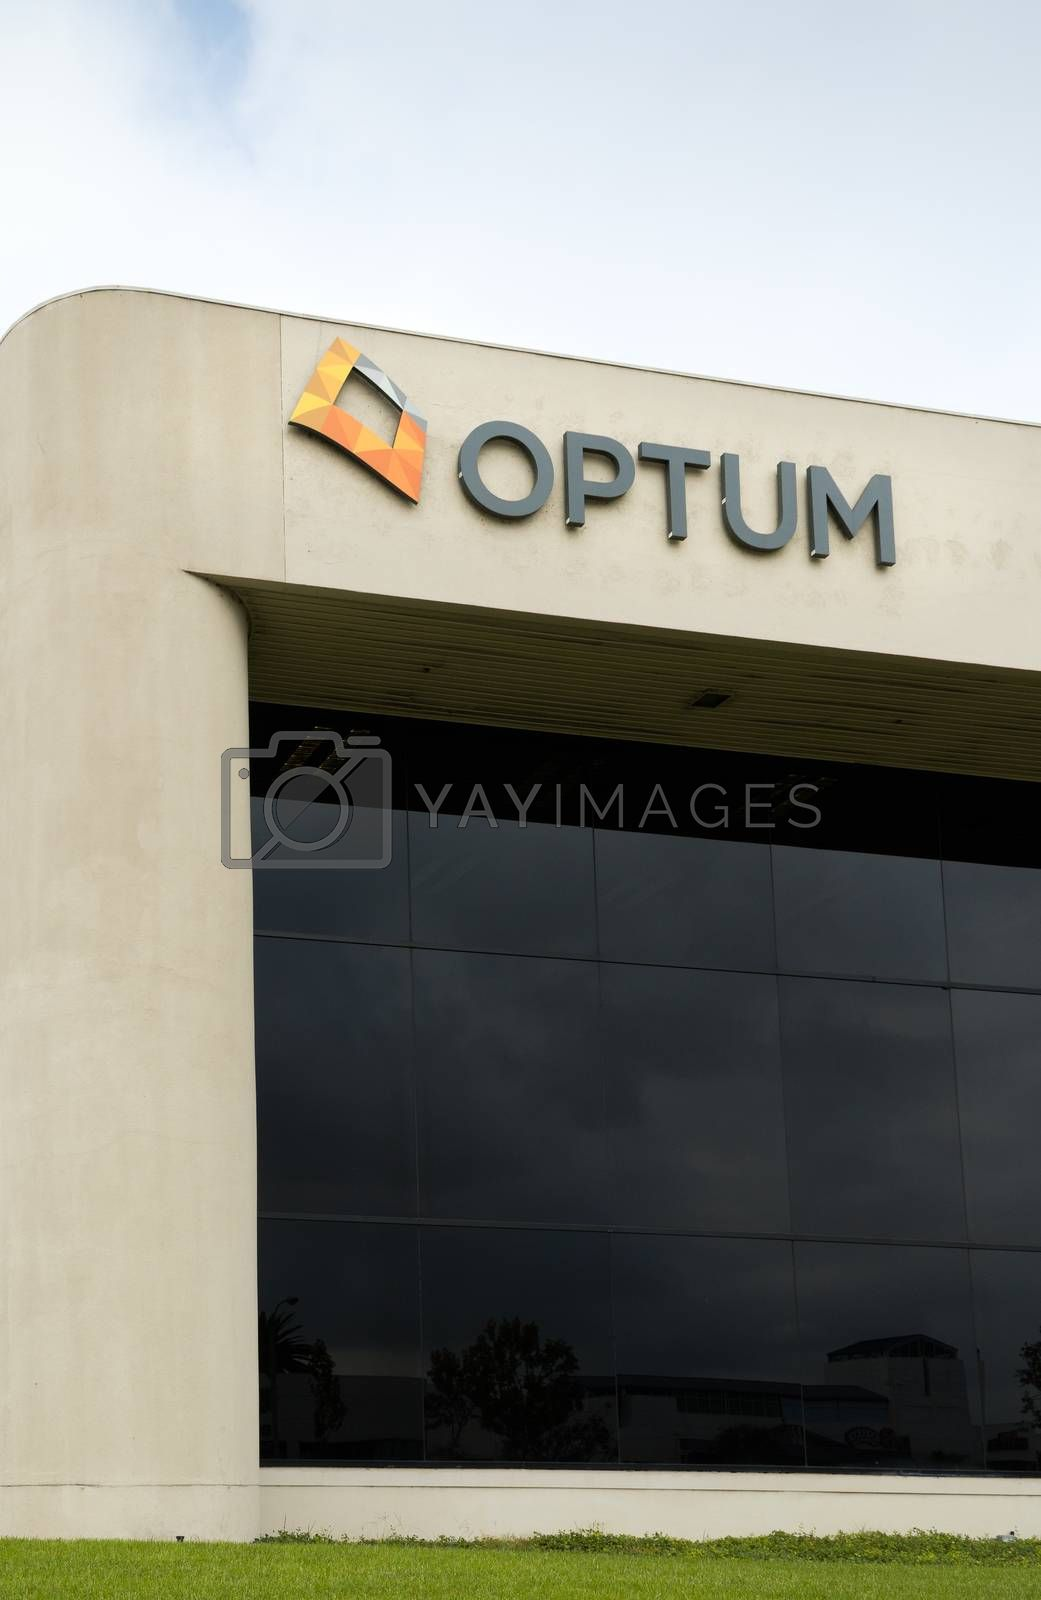 Optum Corporate Headquarters by wolterk